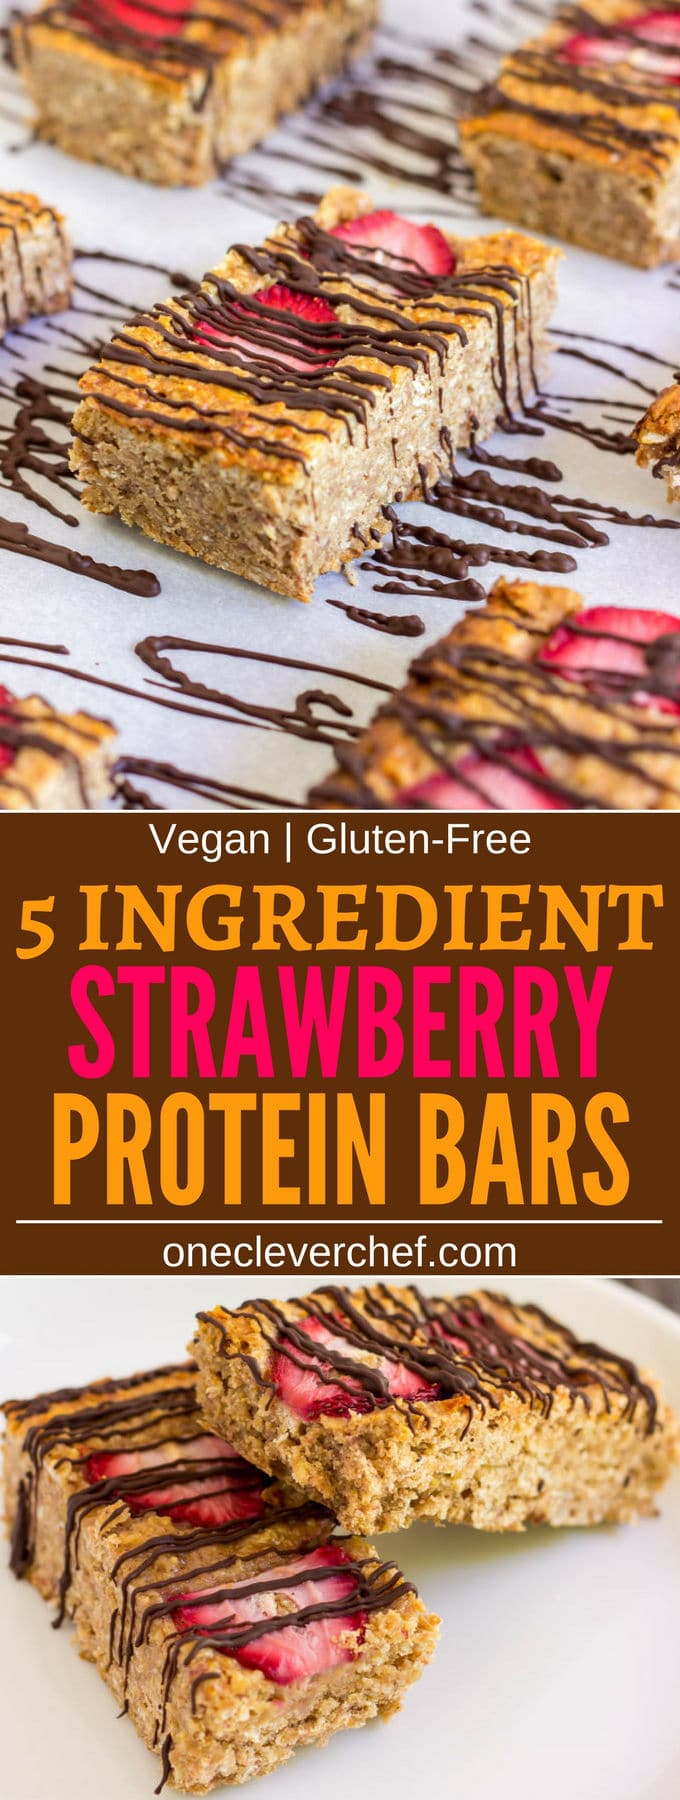 These healthy strawberry protein bars are made with only 5 ingredients. Convenient and quick, this delicious snack packs a lot of nutrients and is guaranteed to fill you up until lunch on a busy day. Vegan, Gluten-Free, Dairy-free and flourless these bars are friendly to most popular diet trends. | www.onecleverchef.com